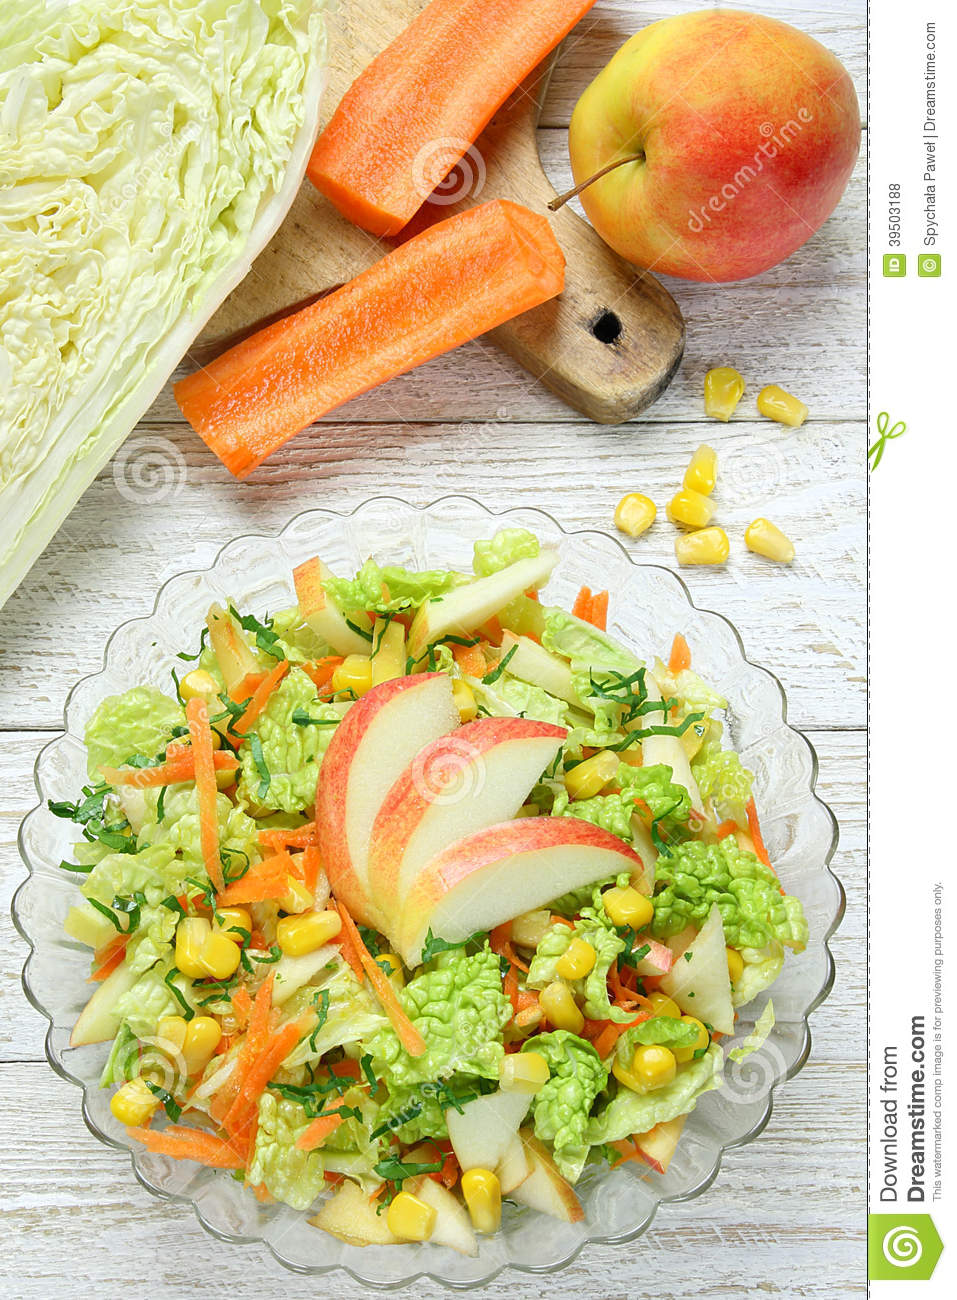 Salad of vegetables and apples